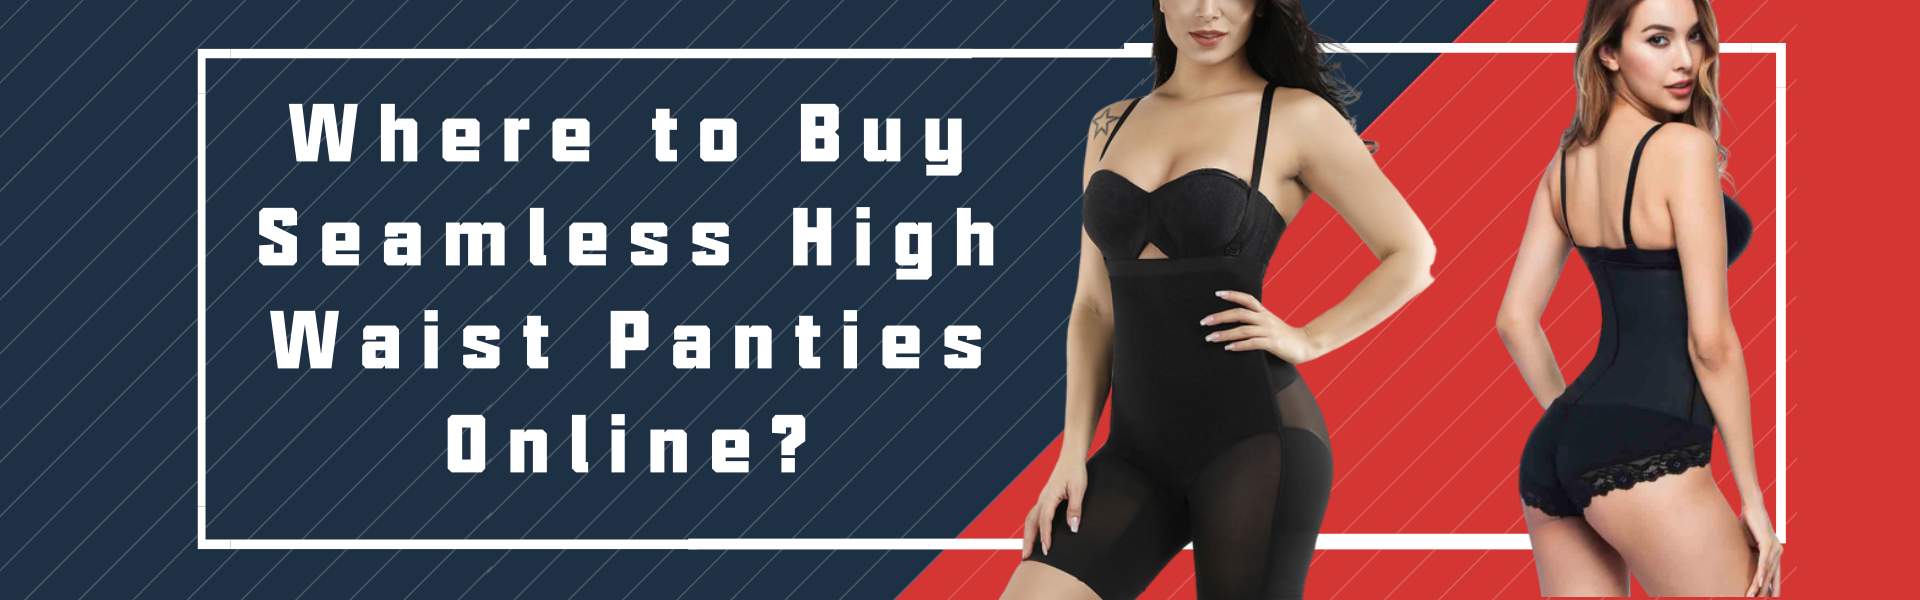 Where to Buy Seamless High Waist Panties Online?